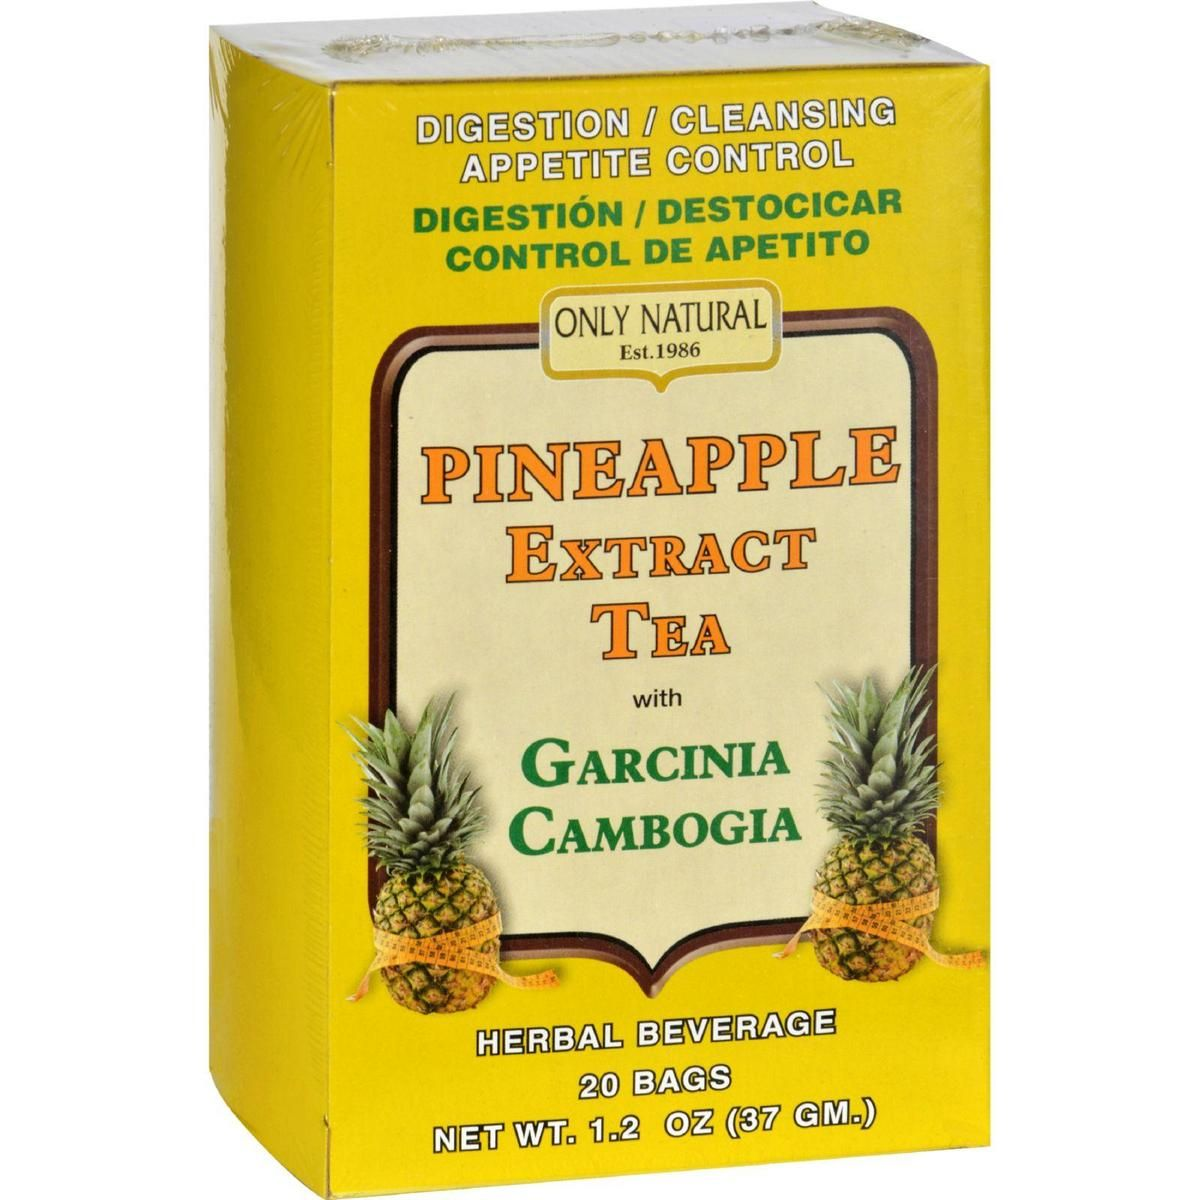 Vinegar Tea And Garcinia Cambogia